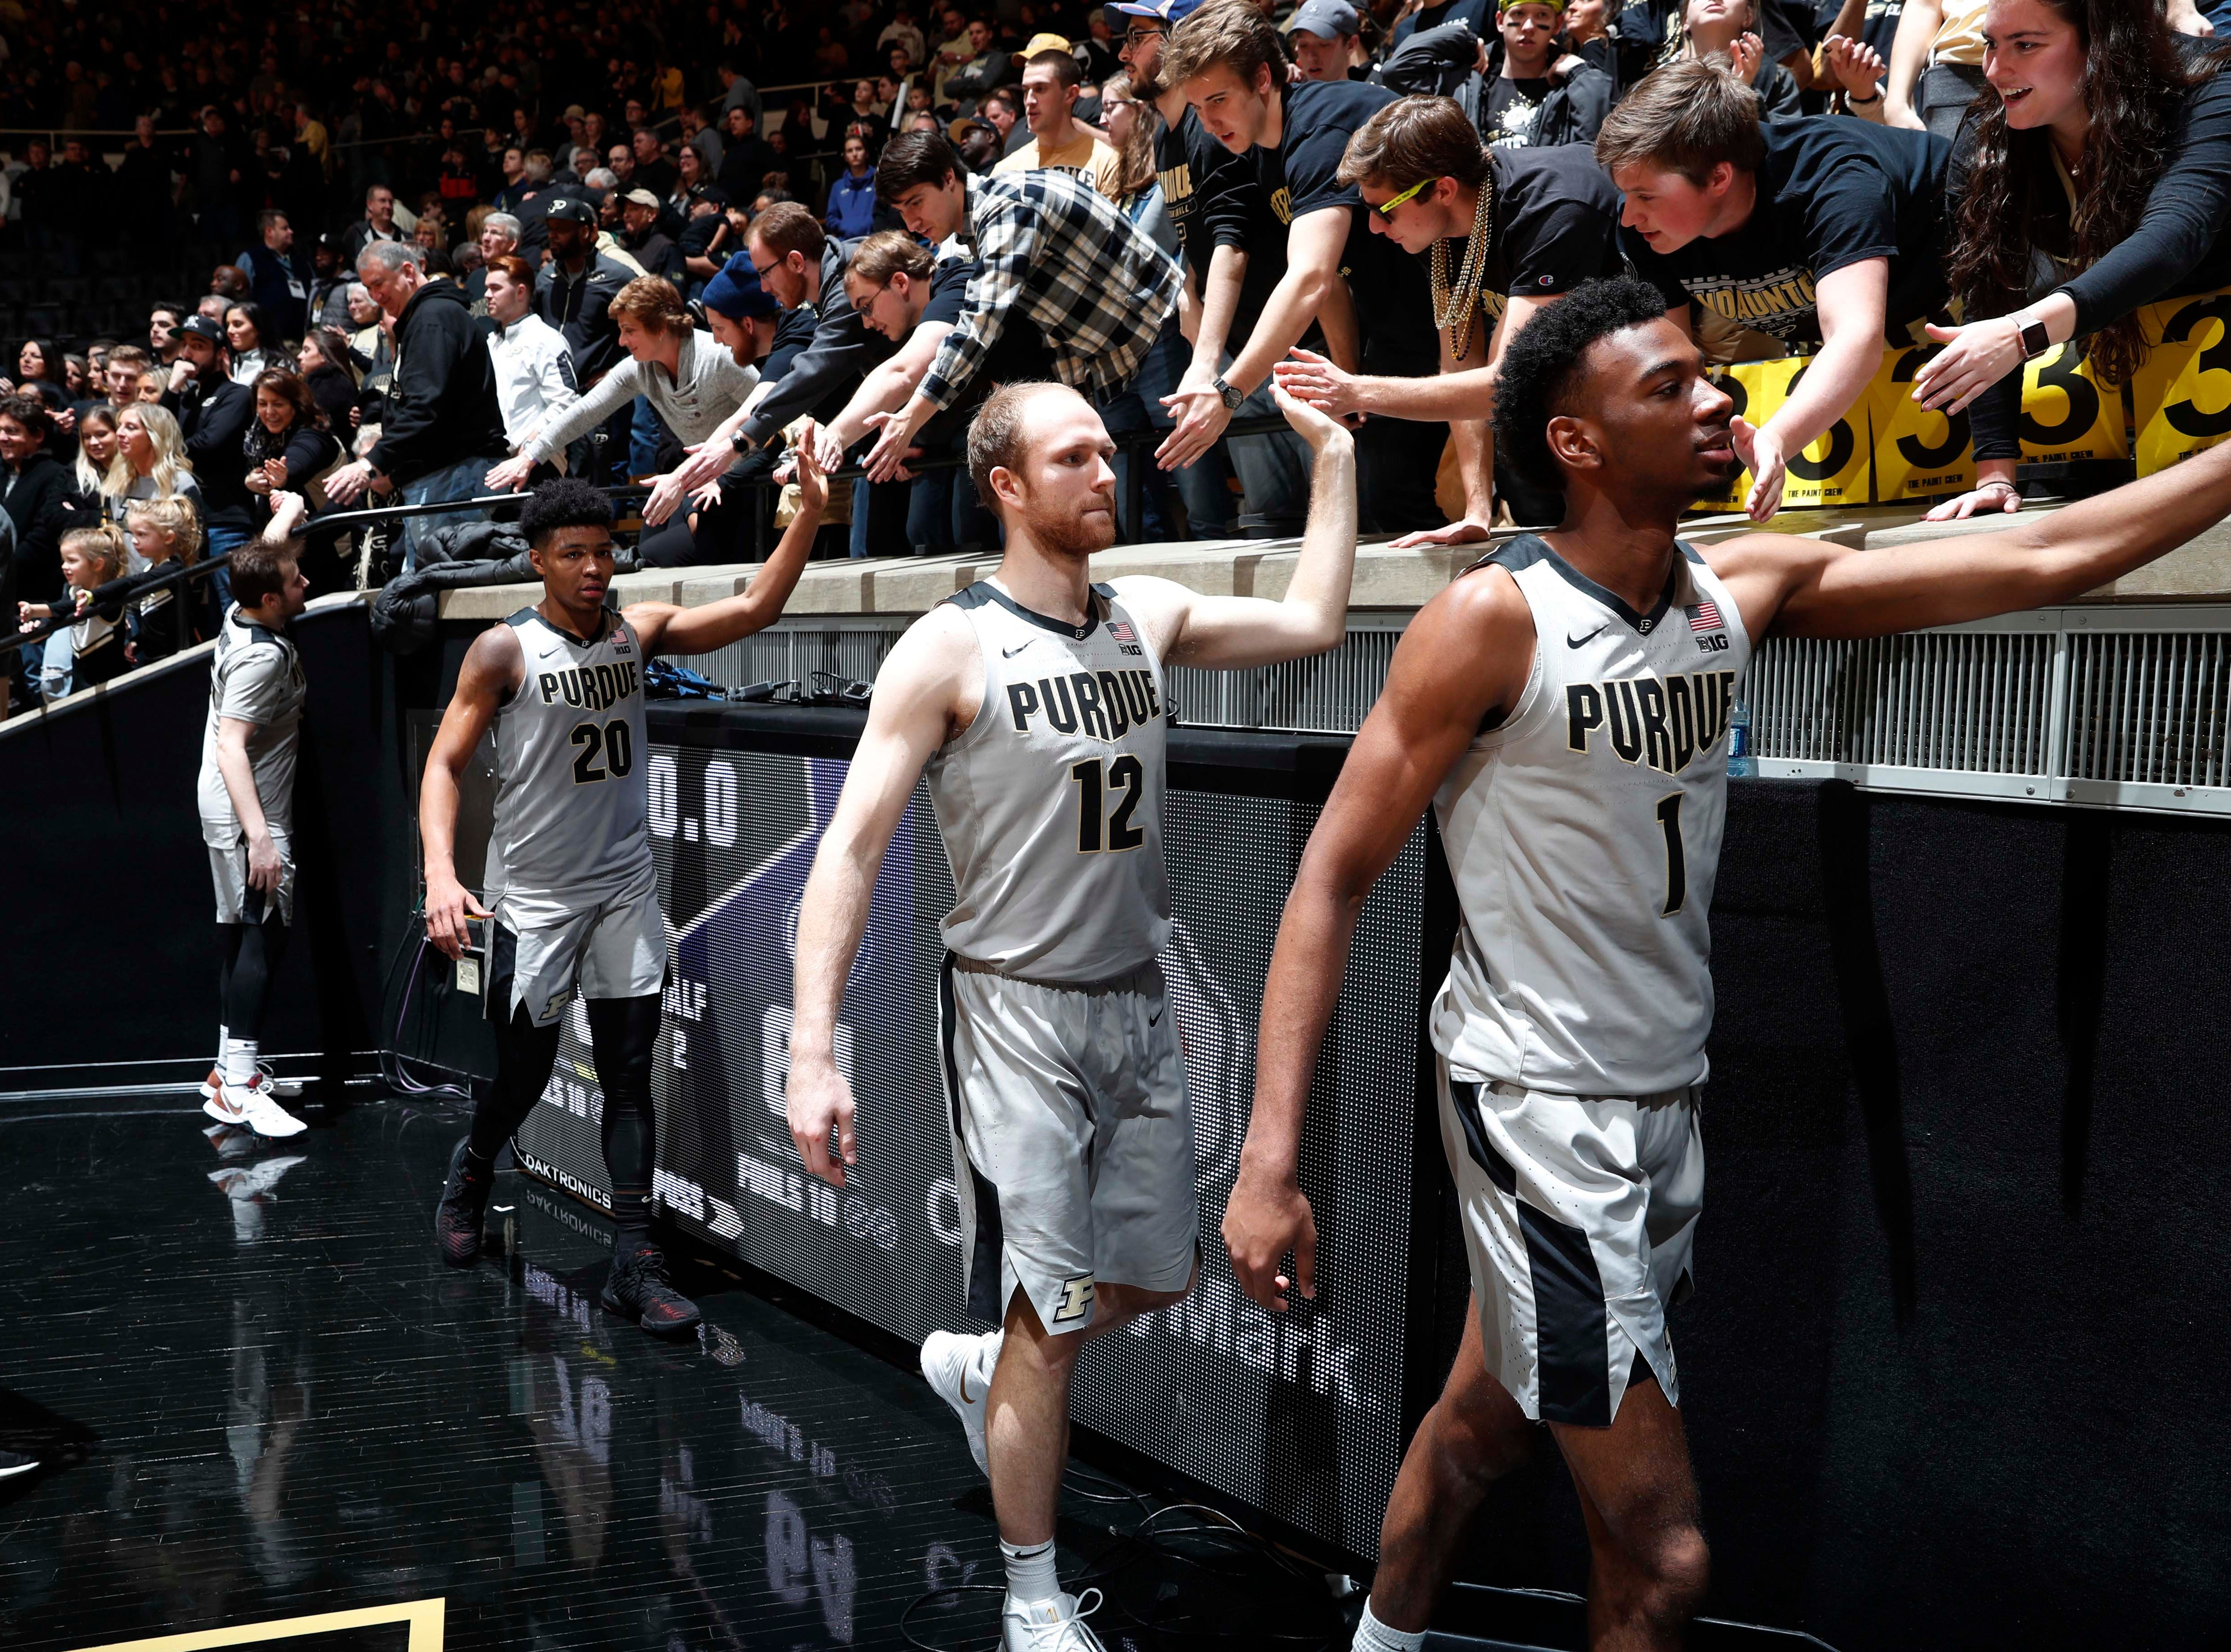 Purdue Boilermakers high five the fans after the victory against the Penn State Nittany Lions at Mackey Arena.